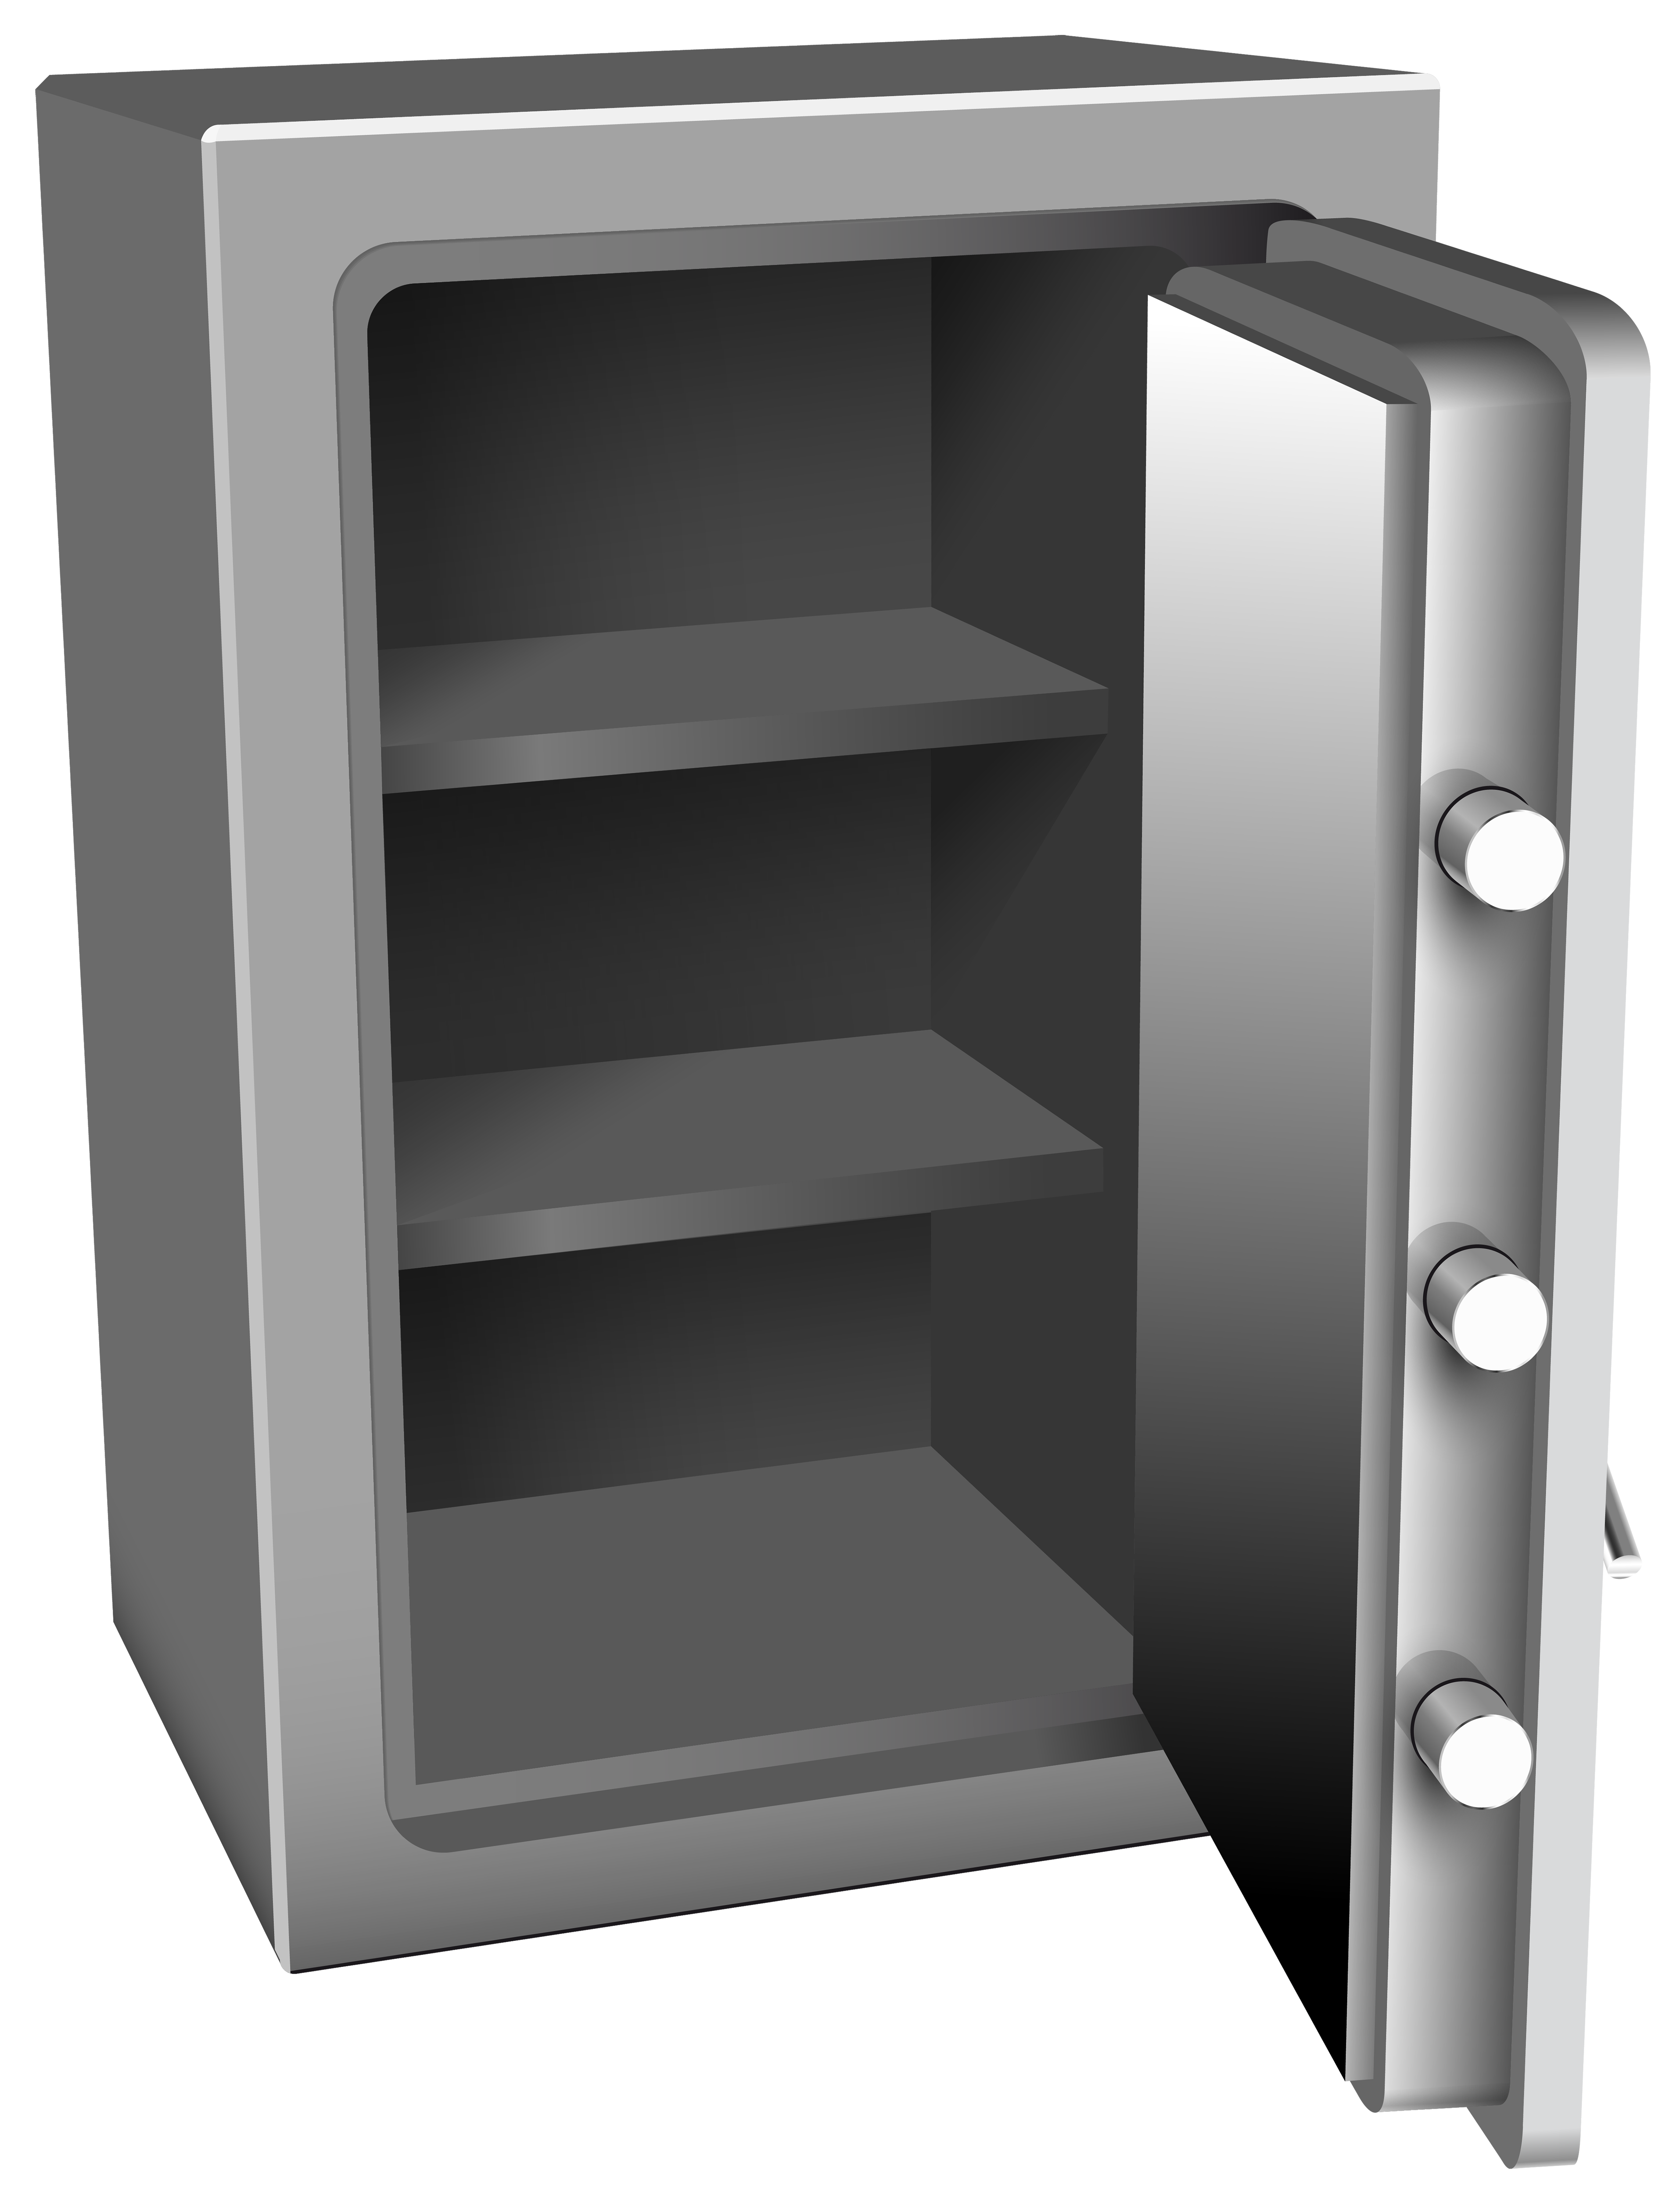 Safe clipart. Open silver png clip